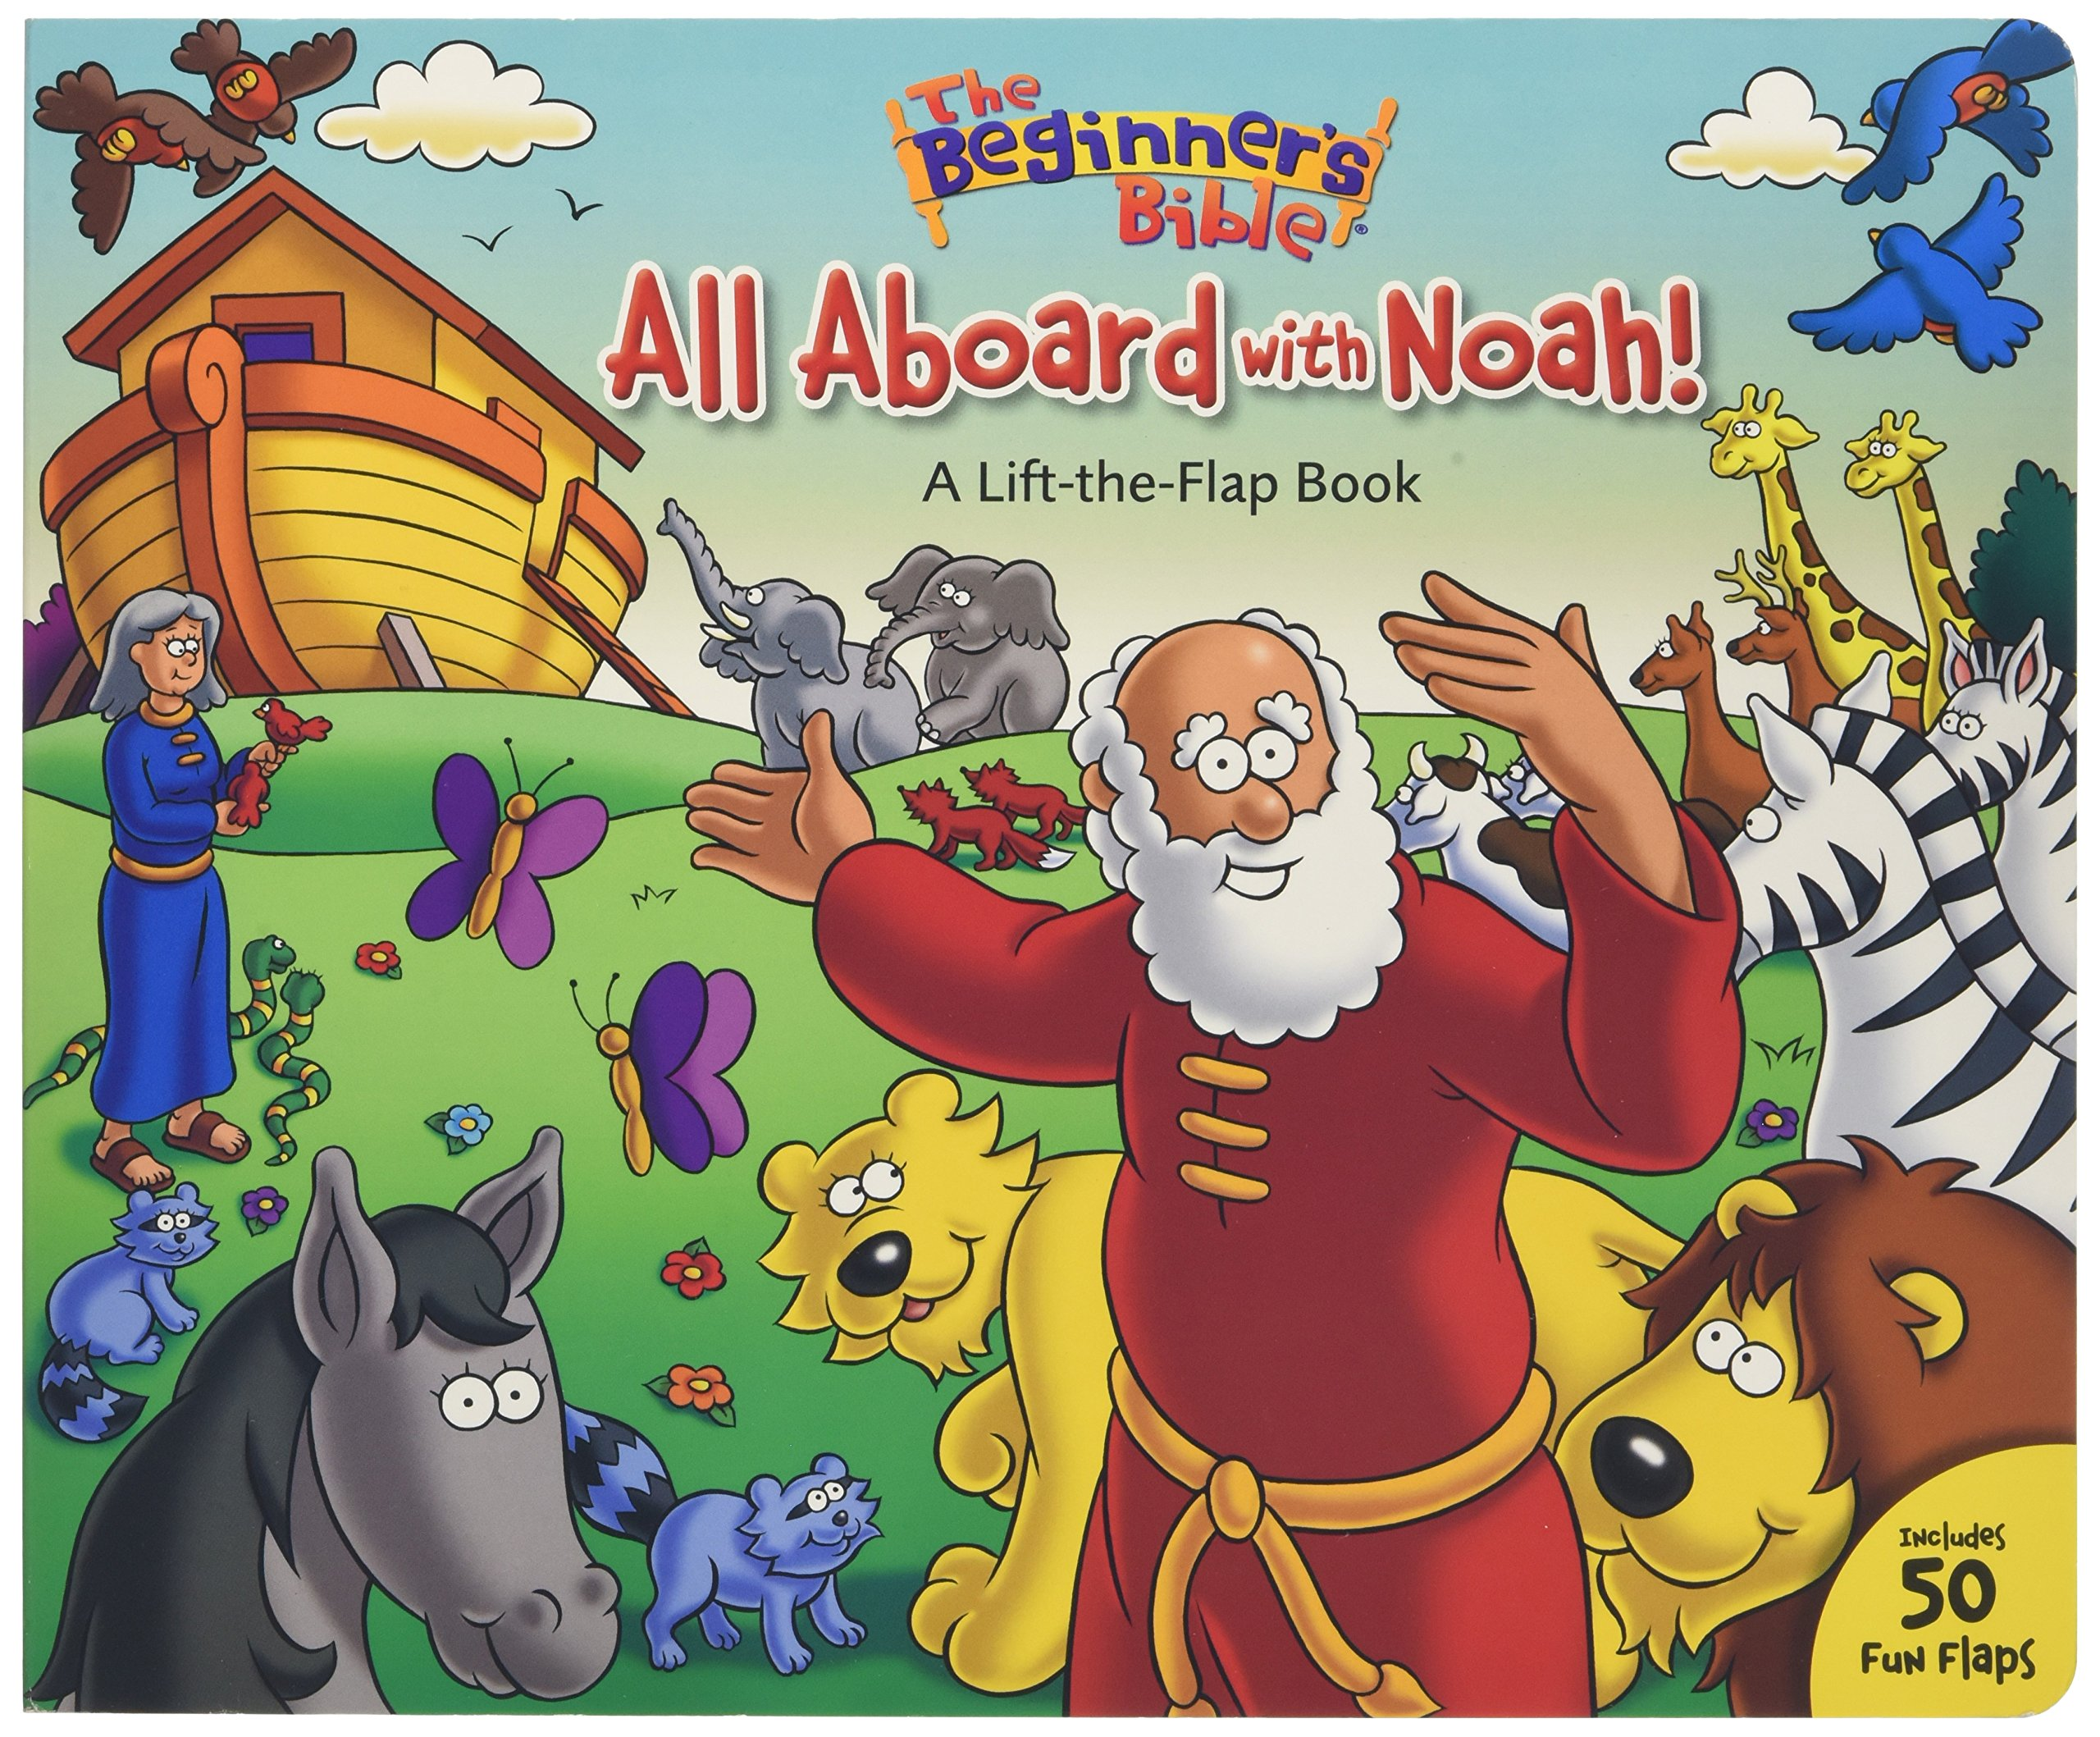 Download The Beginner's Bible All Aboard with Noah!: A Lift-the-Flap Book PDF